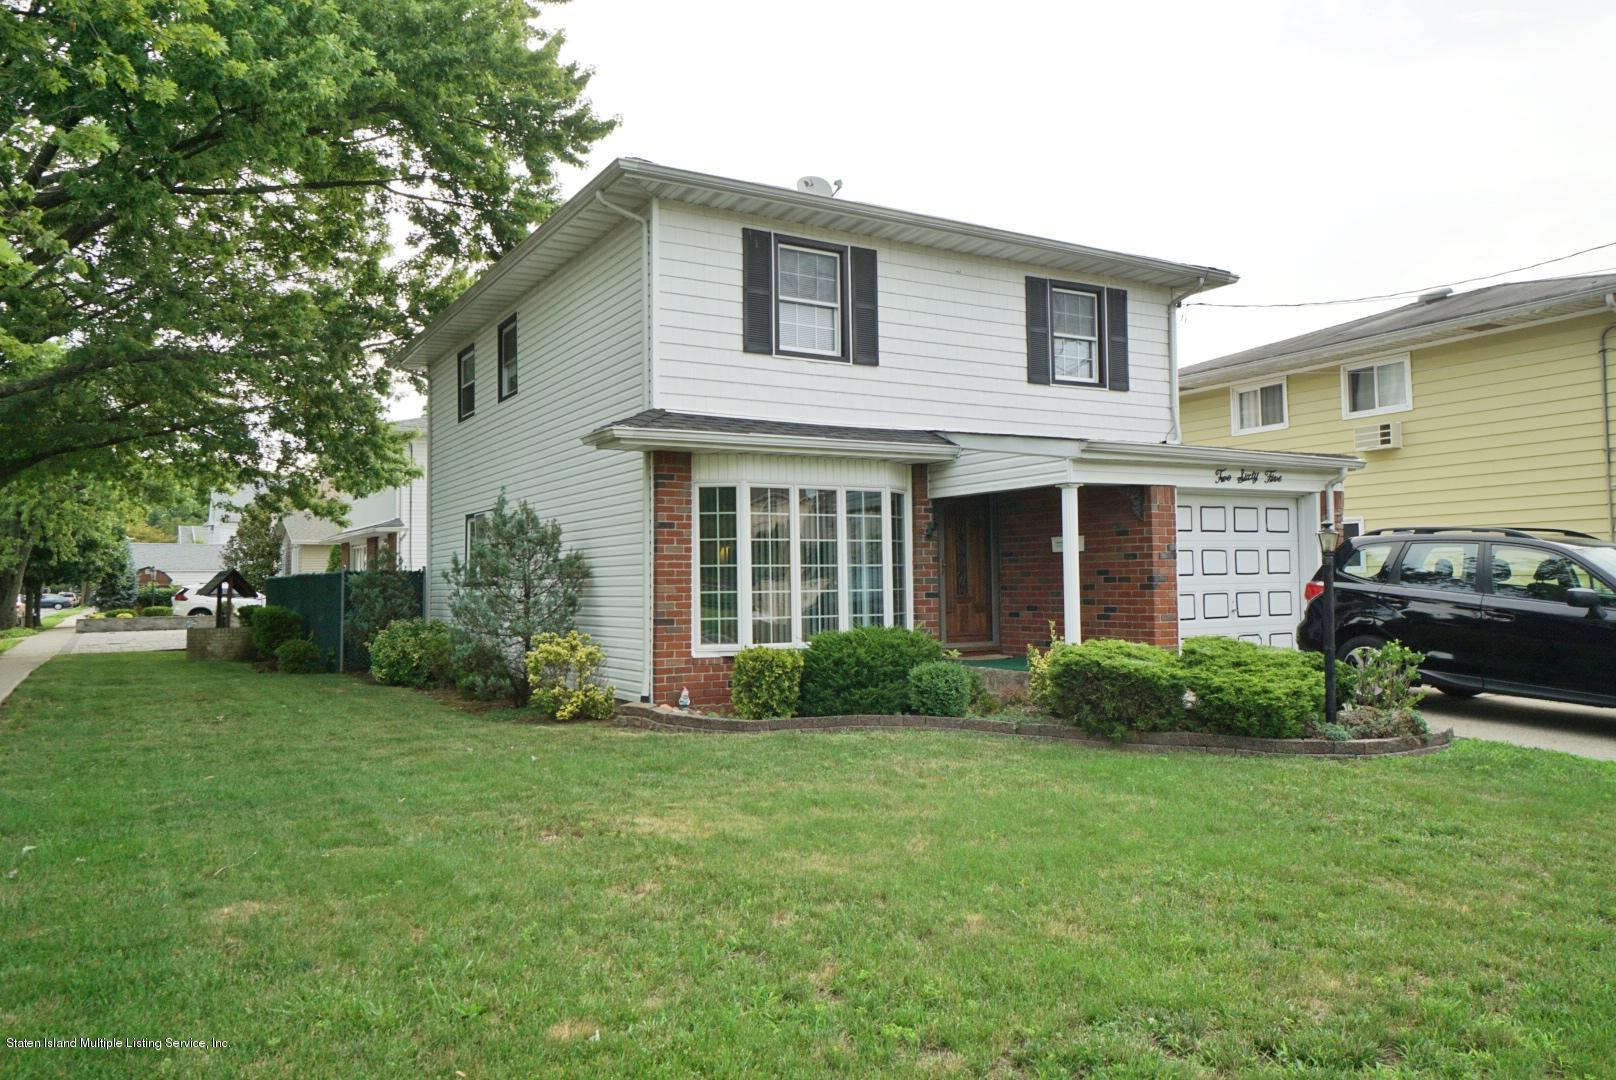 Single Family - Detached 265 Adelaide Avenue  Staten Island, NY 10306, MLS-1139235-46